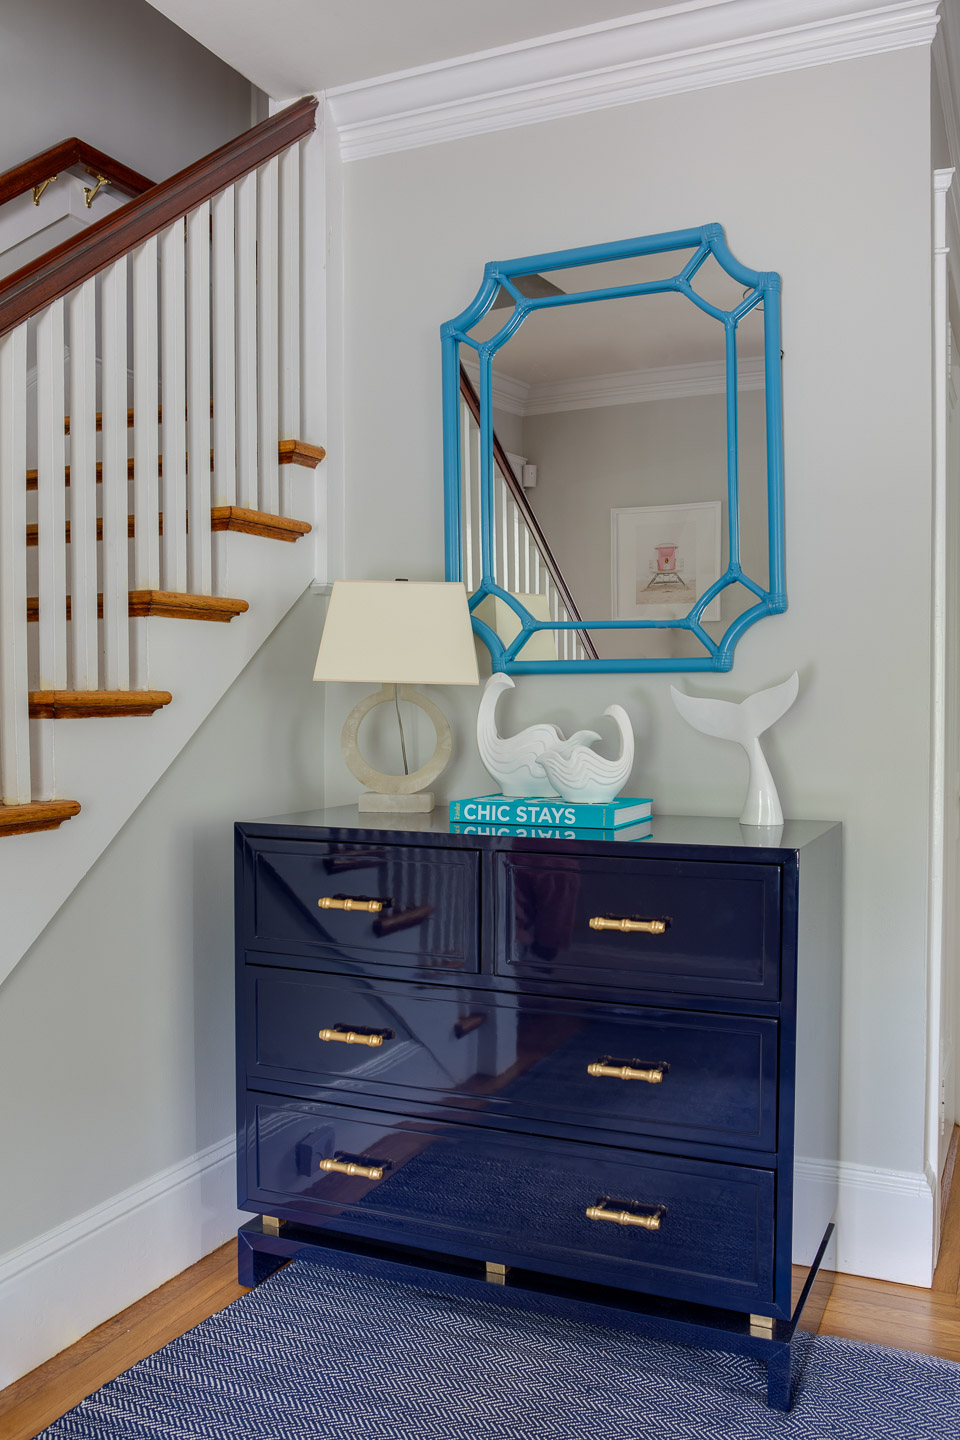 Nigro Kay Getaway, beach house decor, east coast, coastal decor, digs design, love your digs, blue console table, console table, hall table, console decor